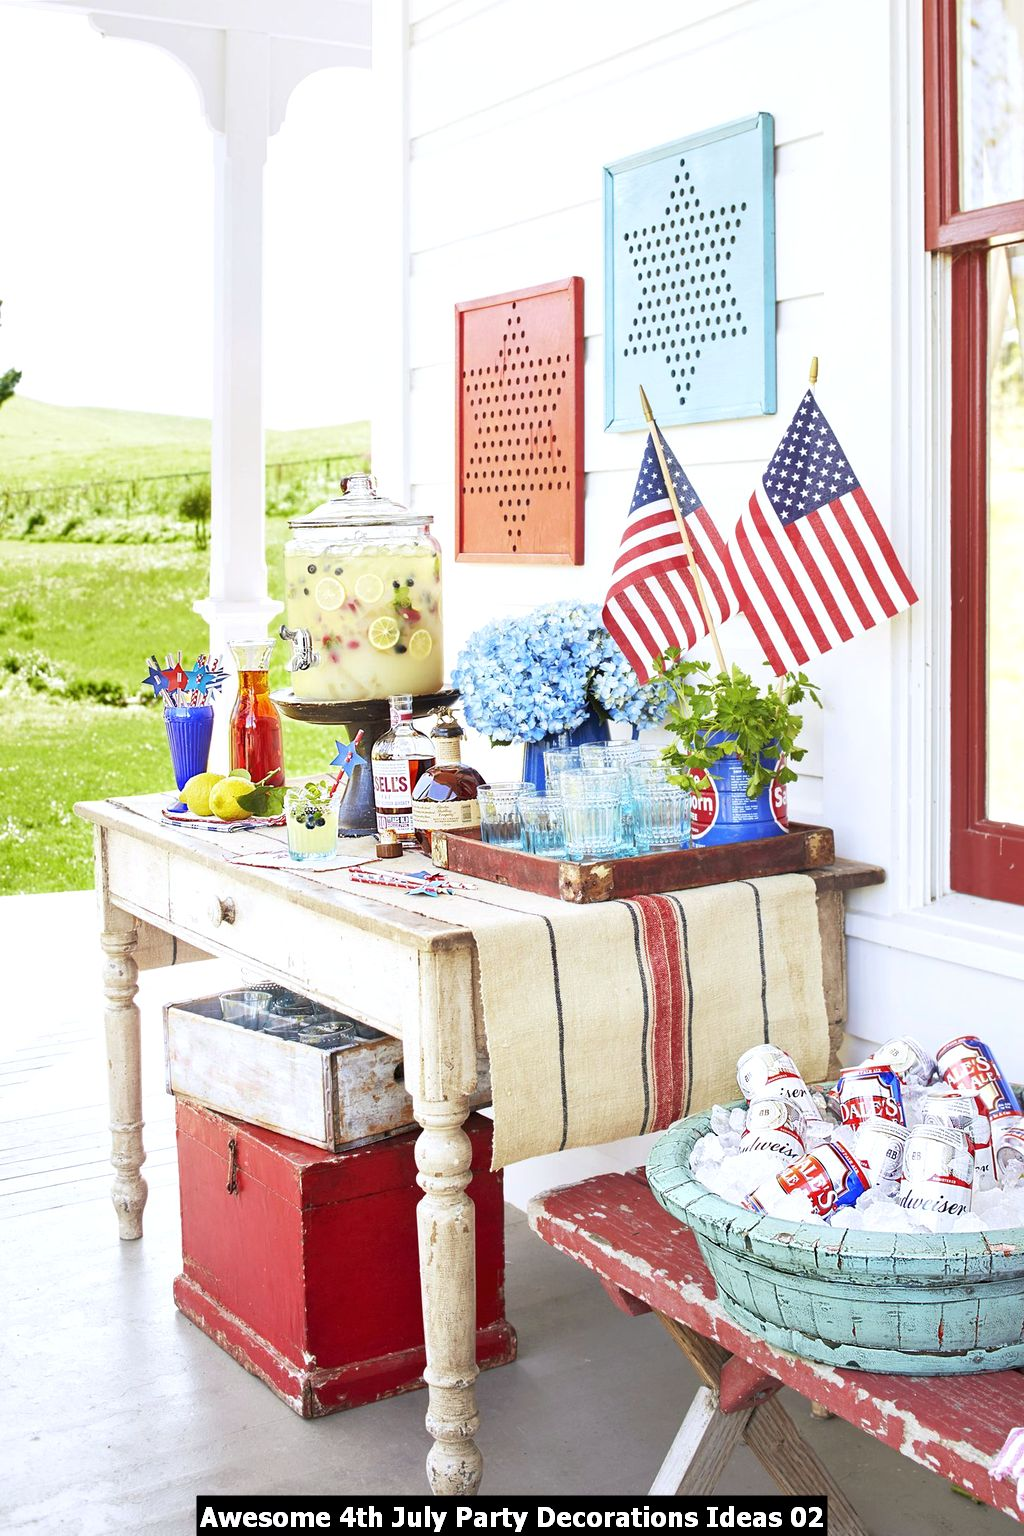 Awesome 4th July Party Decorations Ideas 02